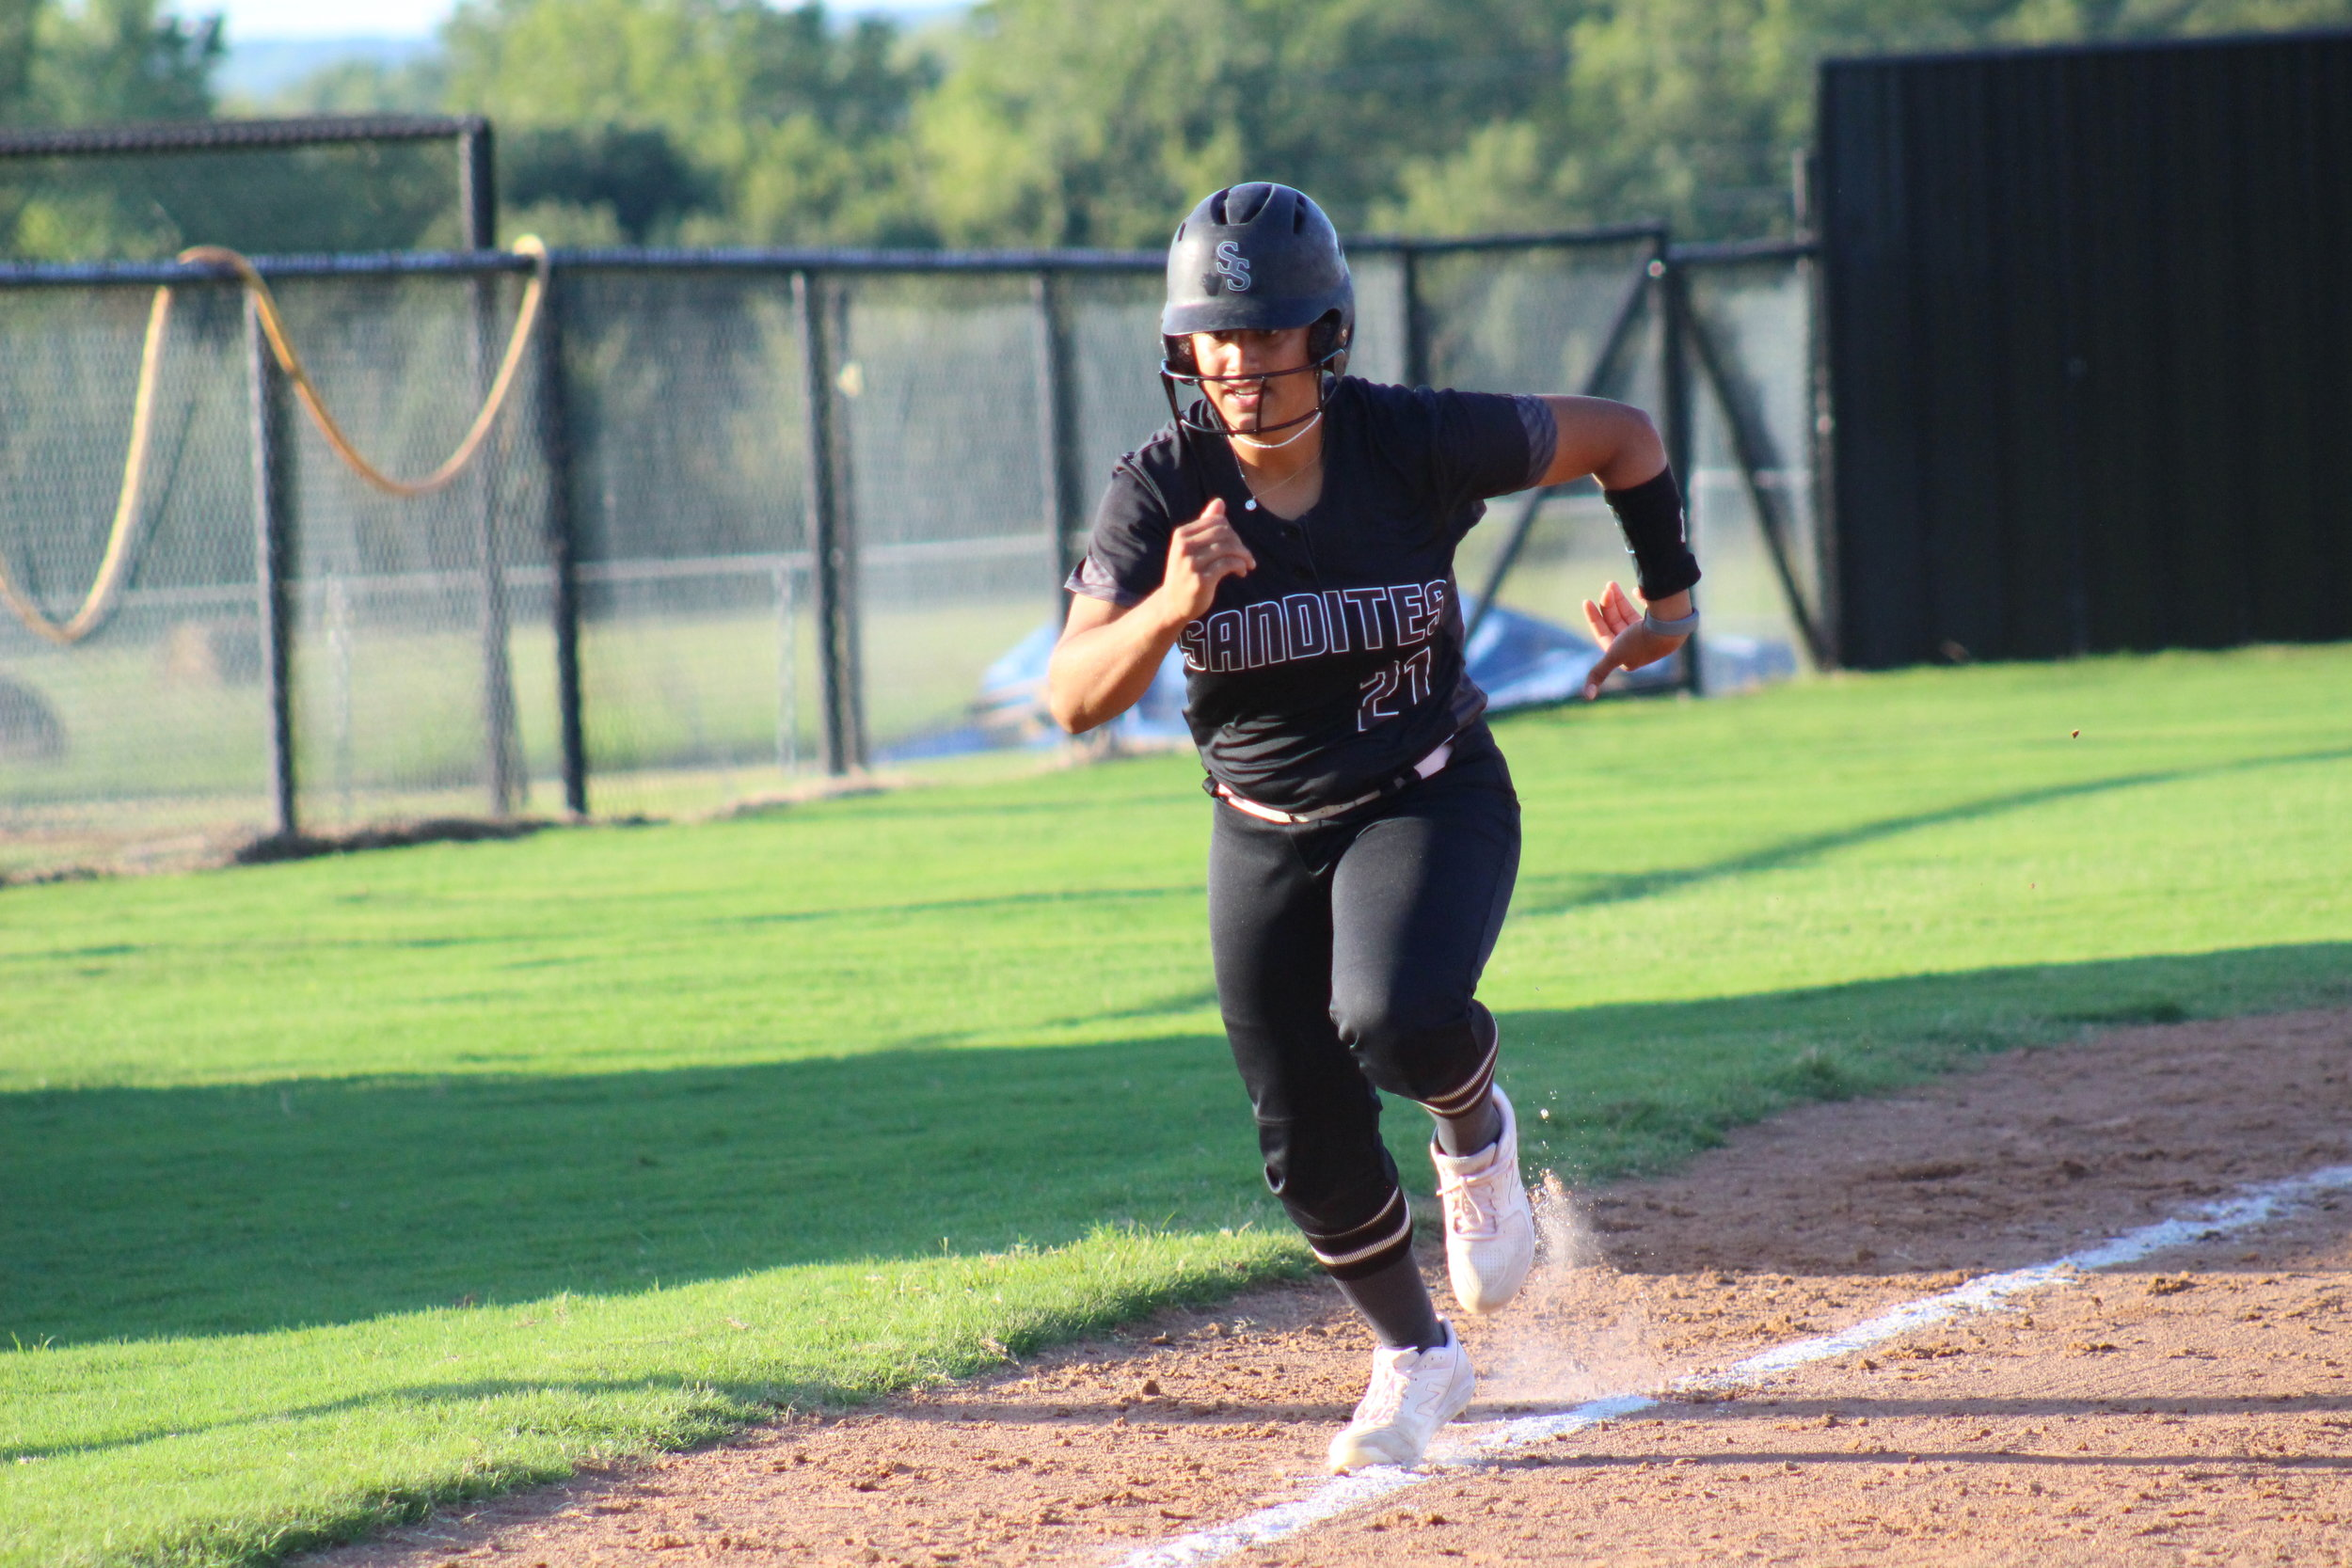 Sabrina Usher hit her fourth home run of the season Tuesday evening. (Photo: Scott Emigh).